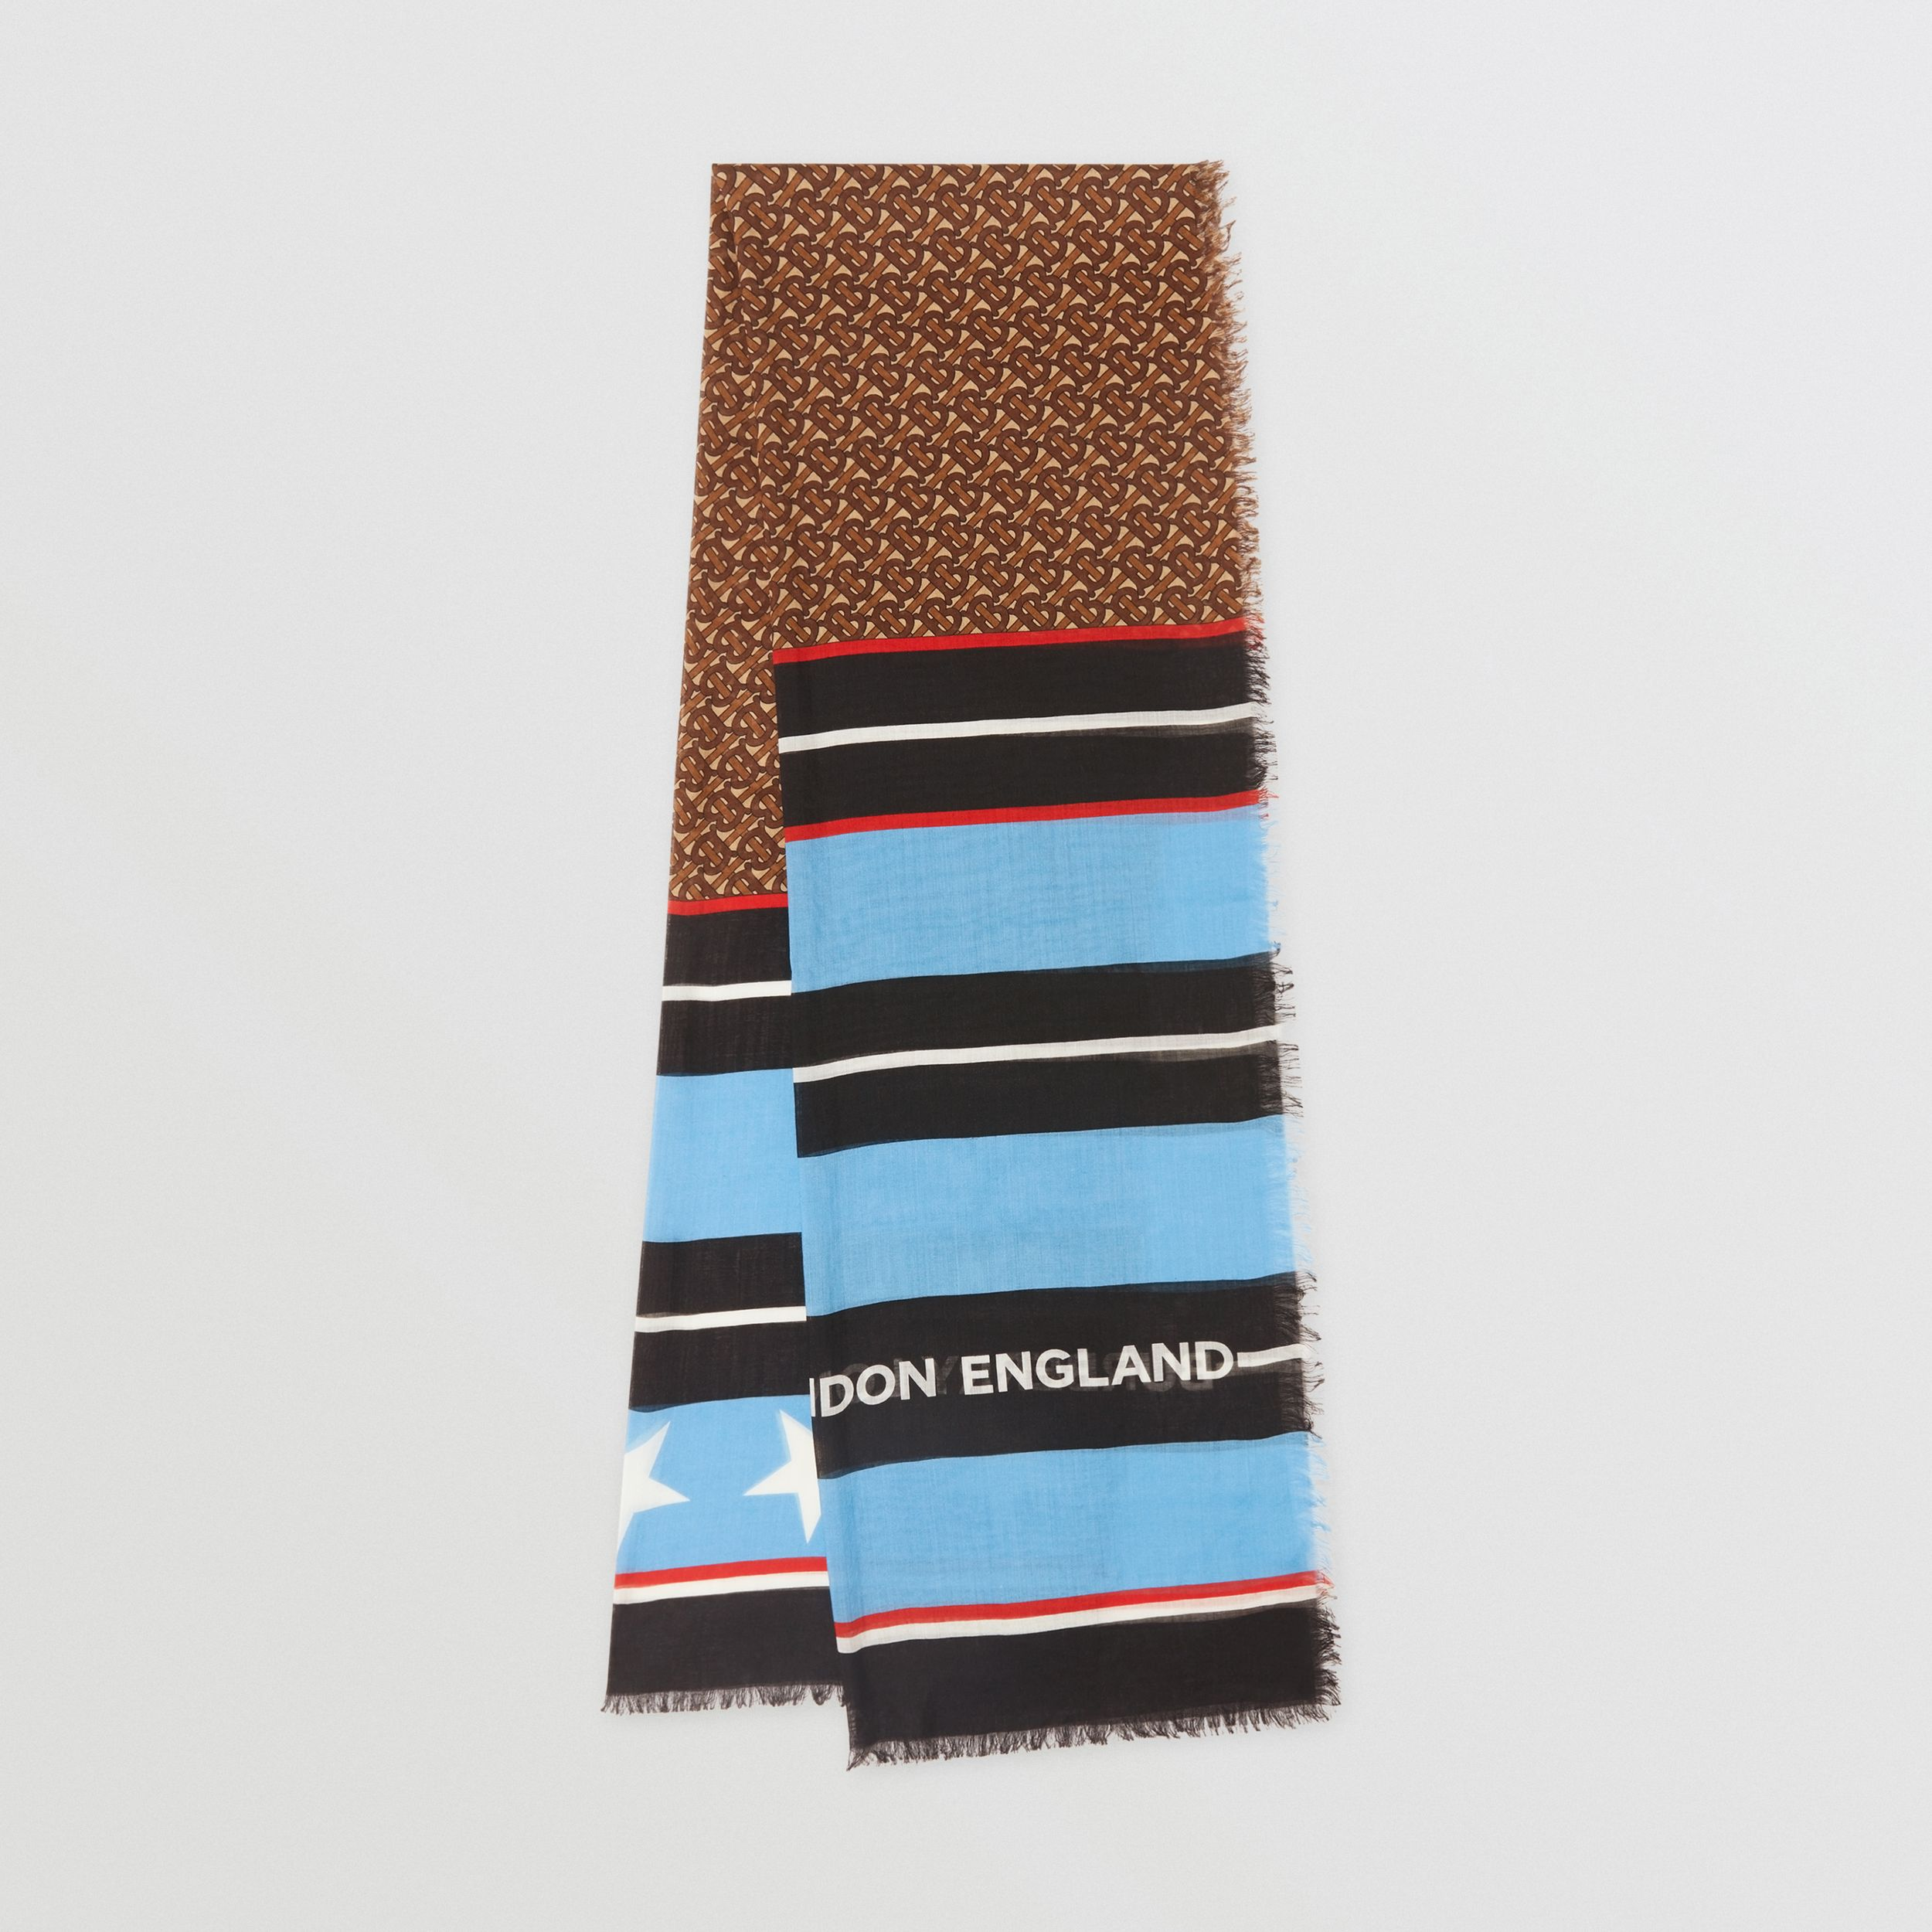 Monogram and Stripe Print Silk Wool Scarf in Blue Topaz/bridle Brown | Burberry - 1